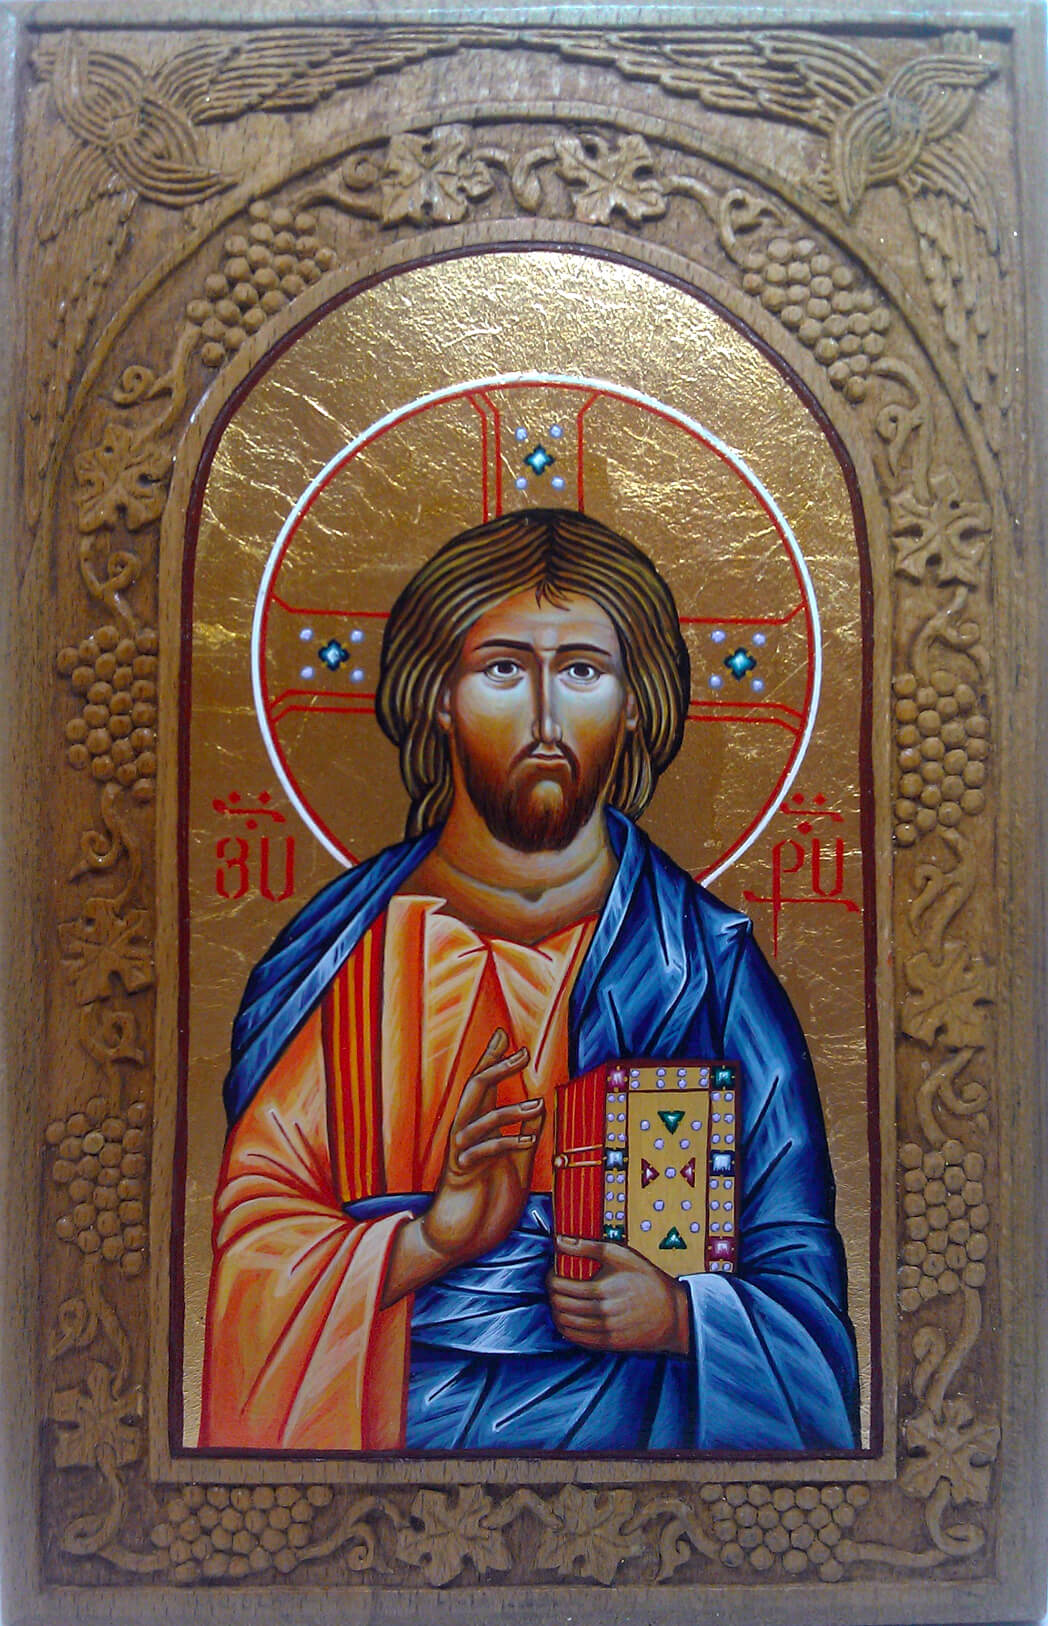 Christ Pantocrator, by Marianna Hovhannisyan